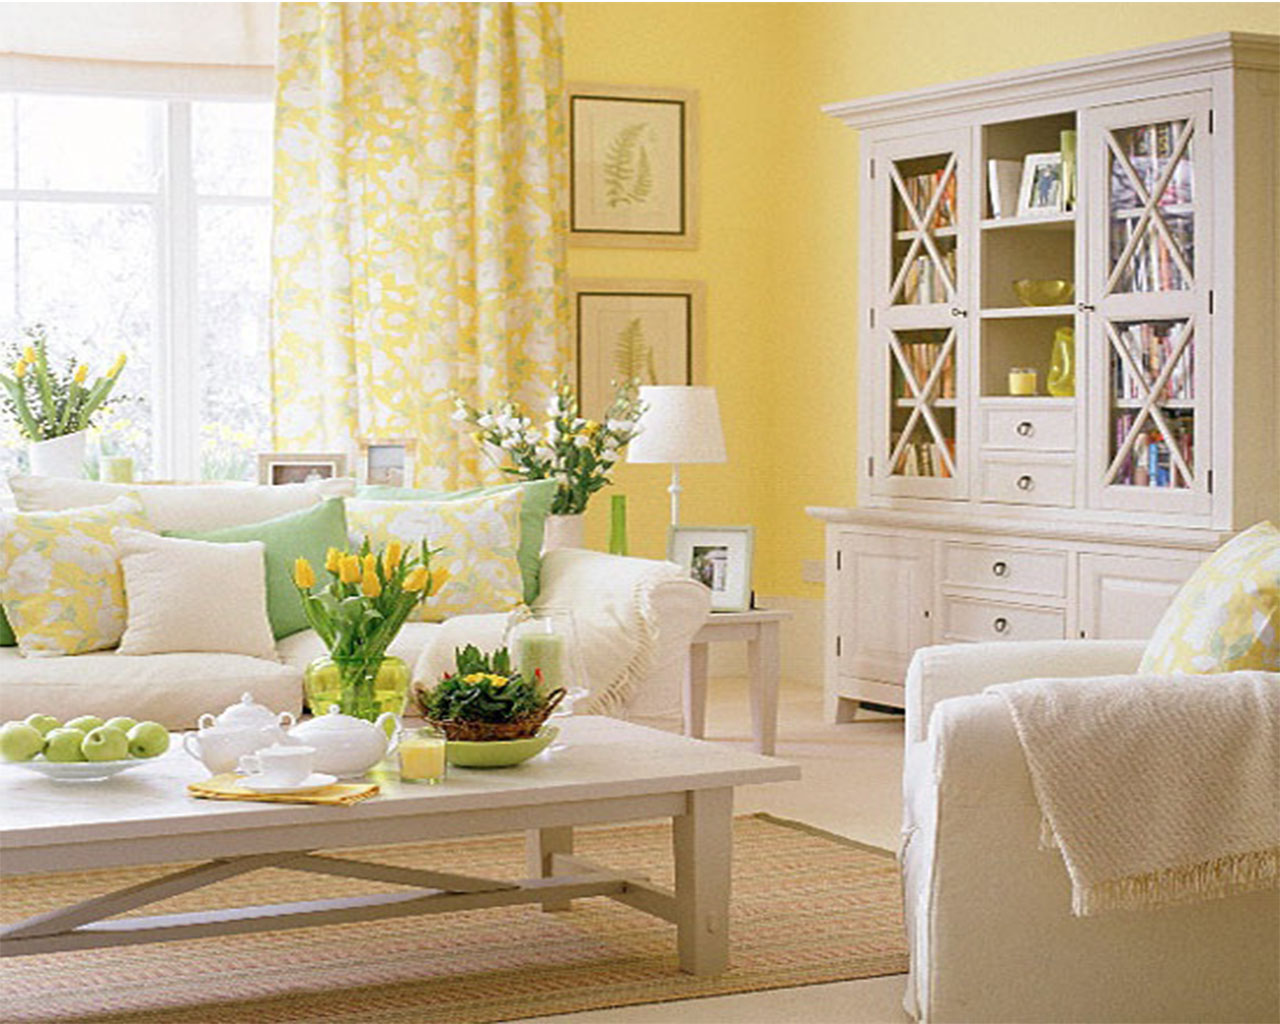 5 Decorating Ideas for a Spring Inspired Apartment Tara